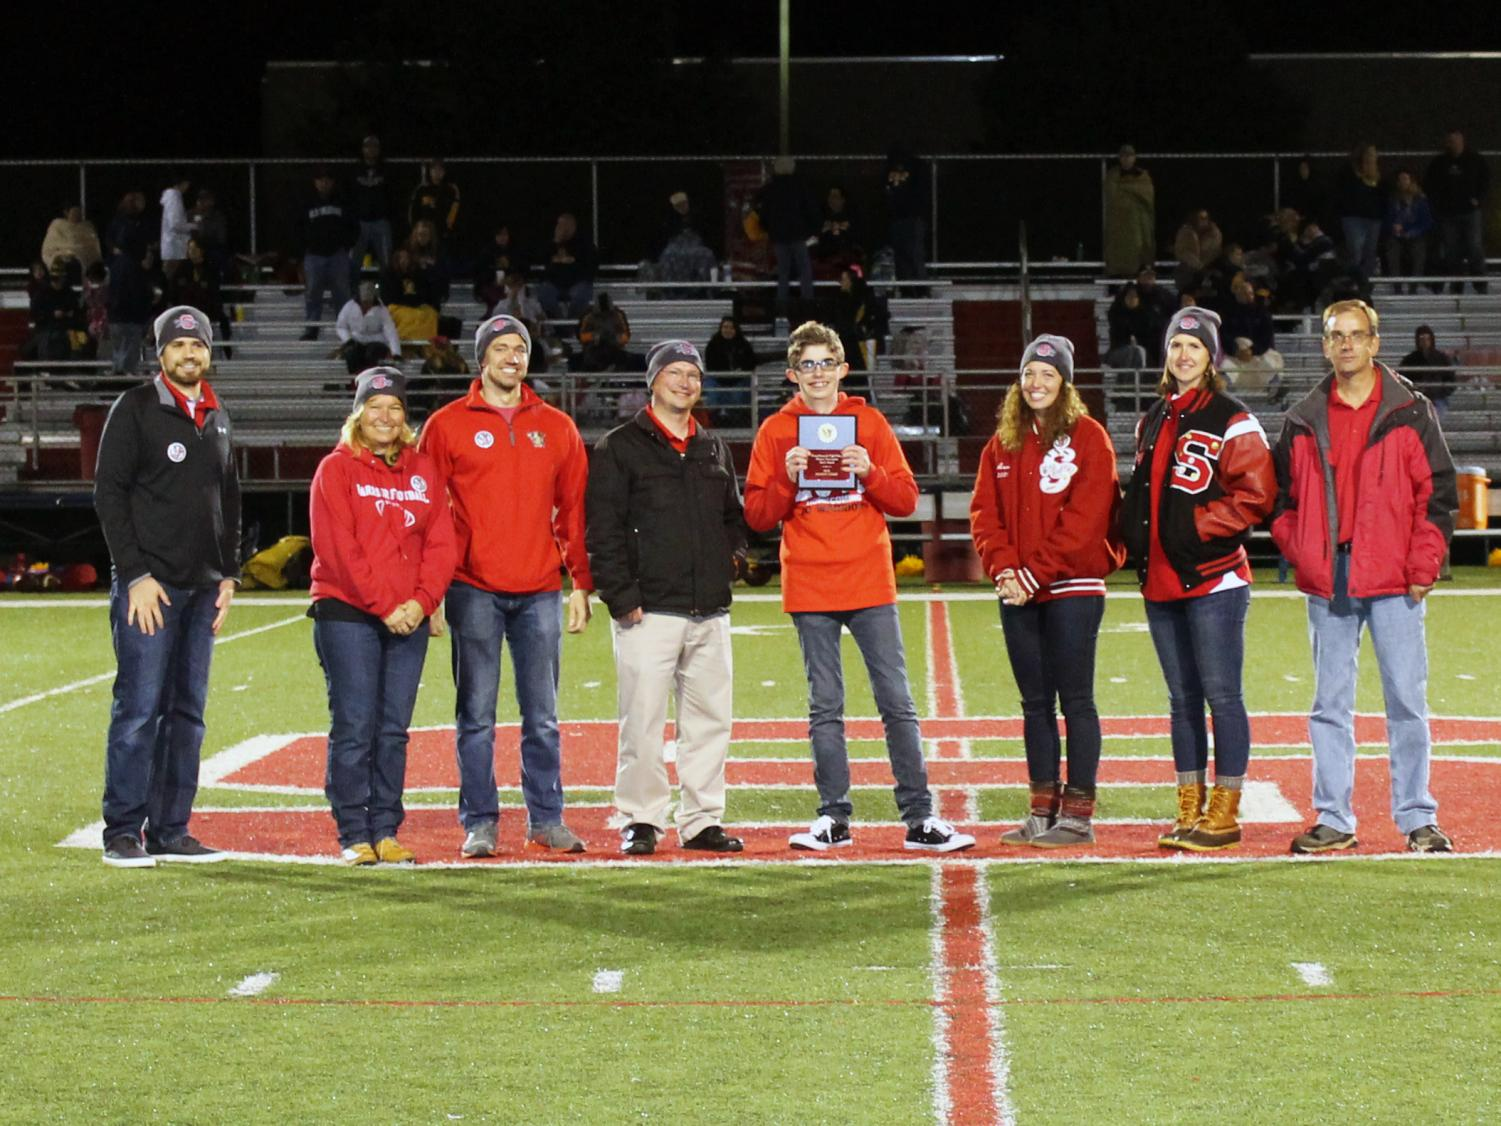 The presentation of the Susquehannock Alumni Association Spirit Award 2018. Pictured from left are Trevor Carrington, Susan Barnhart, Josh Allwine, Mark Rill, Jensen Perry, Anne Bozievich, Sarah Brown, and Jeff Joy.